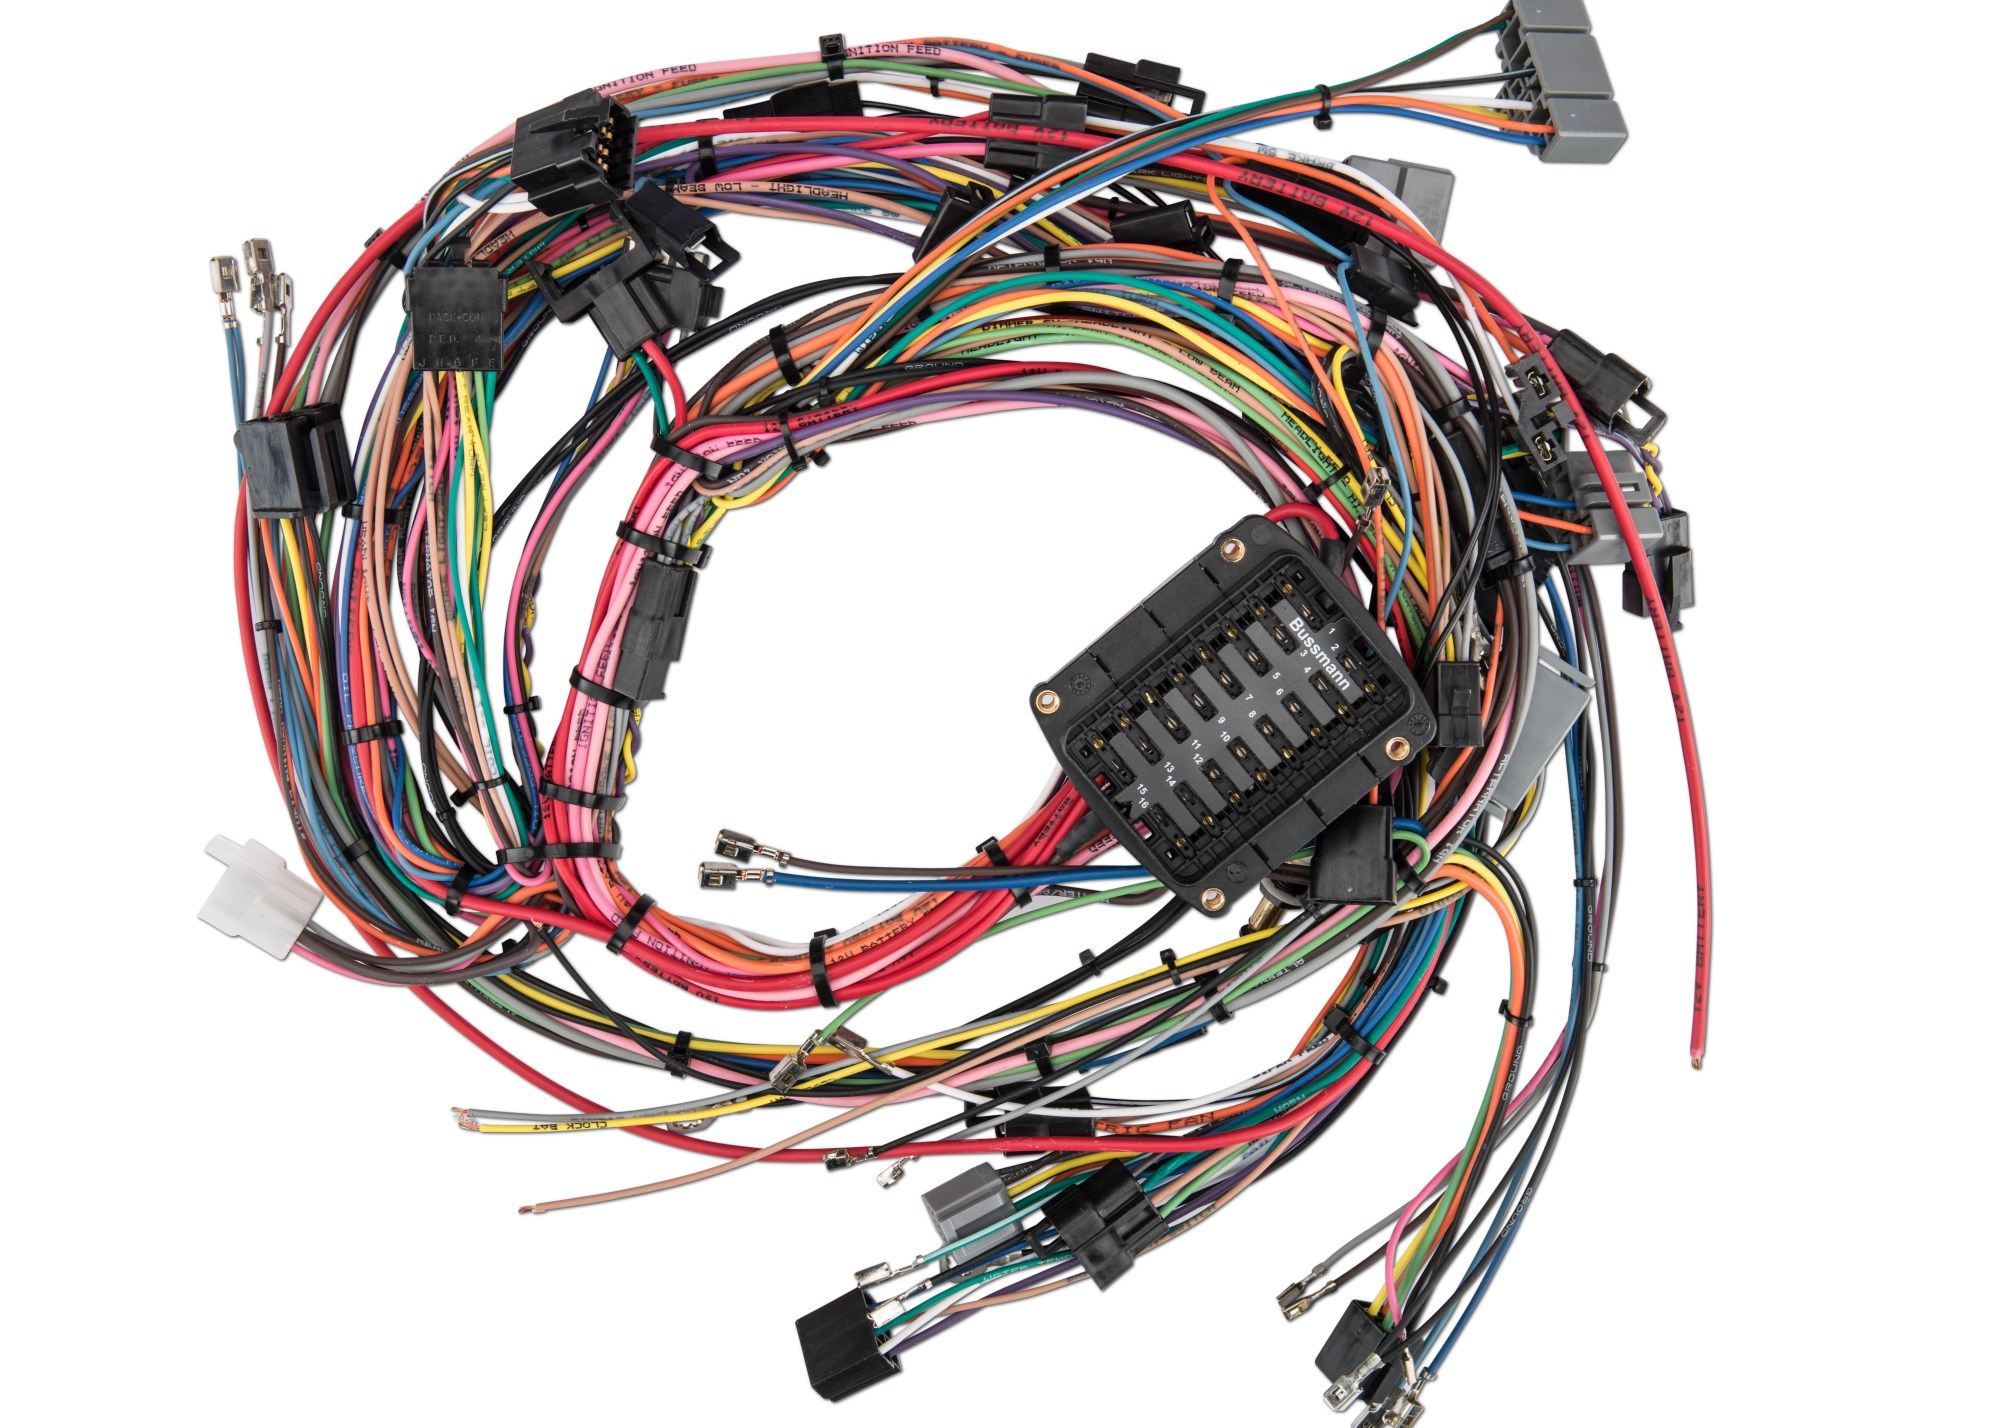 hight resolution of ford engine swap wiring harness manual e book ford 5 0 swap wiring harness